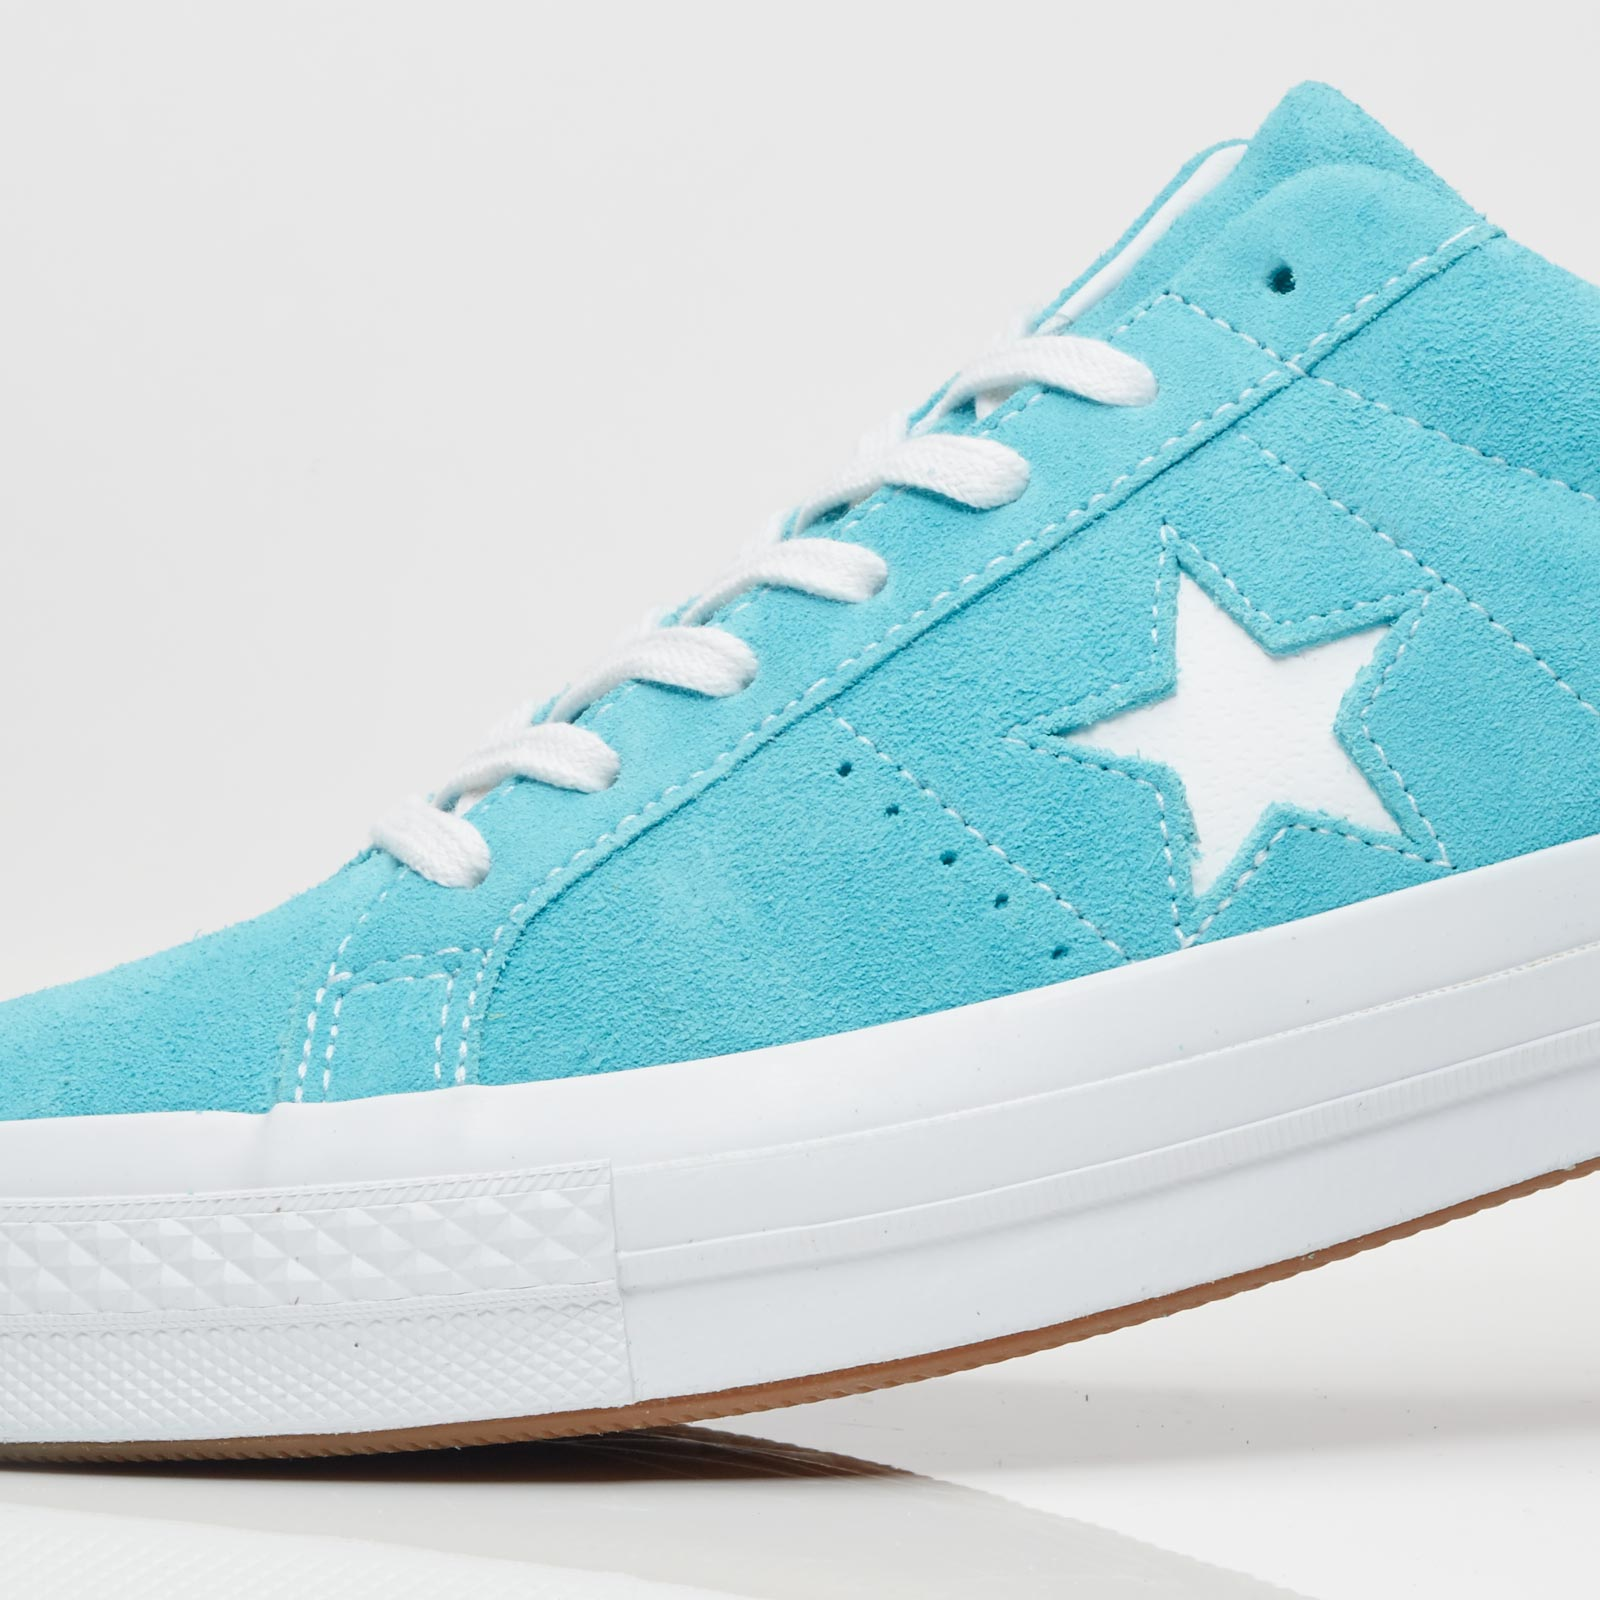 converse one star ox blue